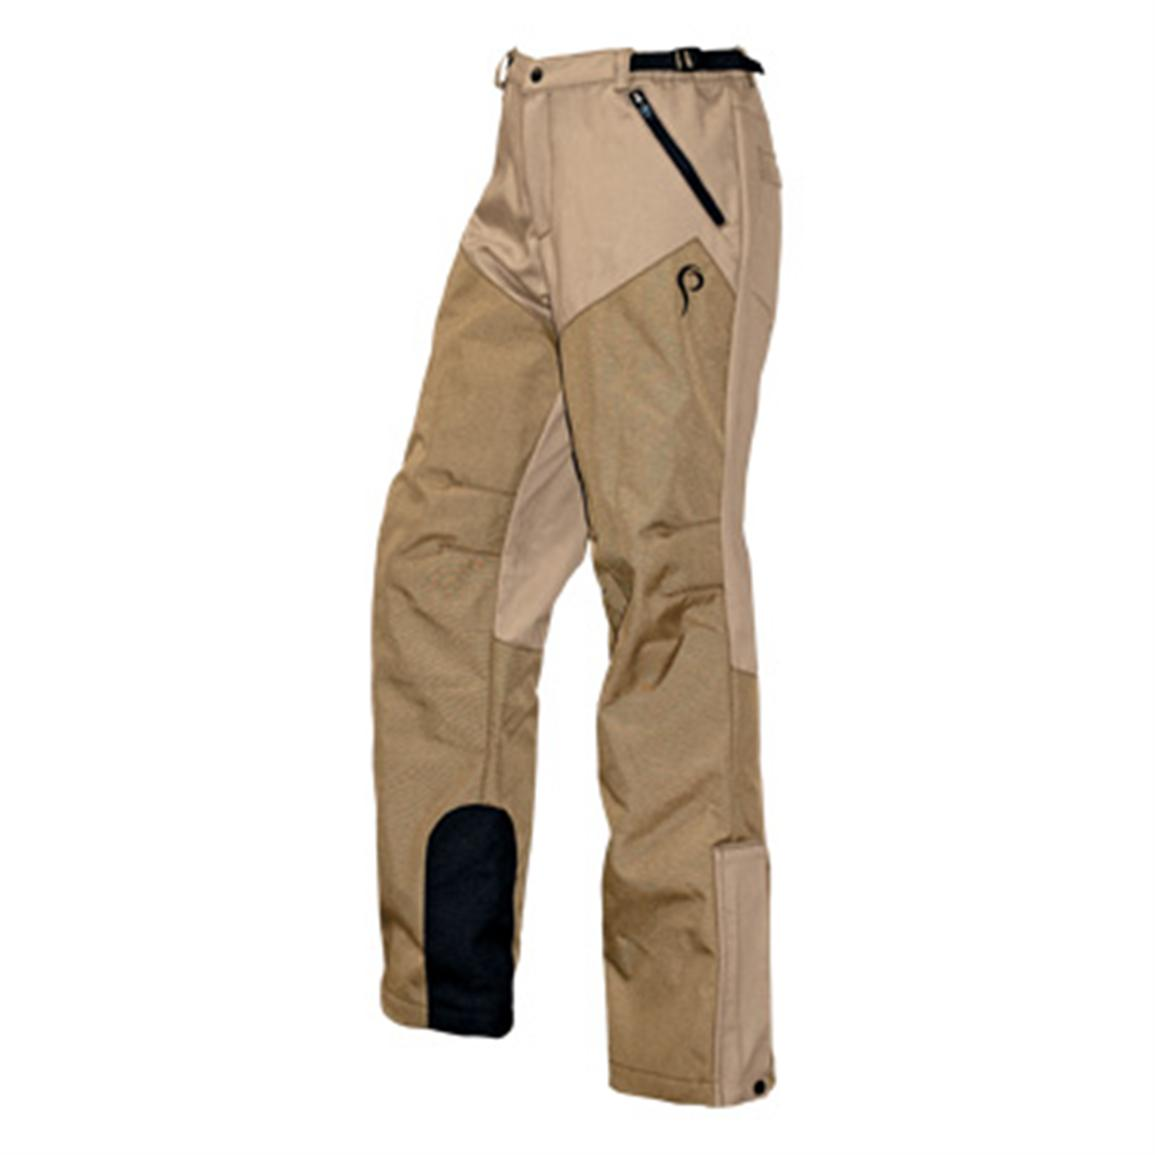 Lastest Comfortstretch Cotton Boasts Lightweight, Breathable Performance Wearresistant Nylon Reinforcements In Key Areas Preformed Knees Promote Full Range Of Motion In The Field Youll Love The Classic Yet Modern Design Of Berettas Womens